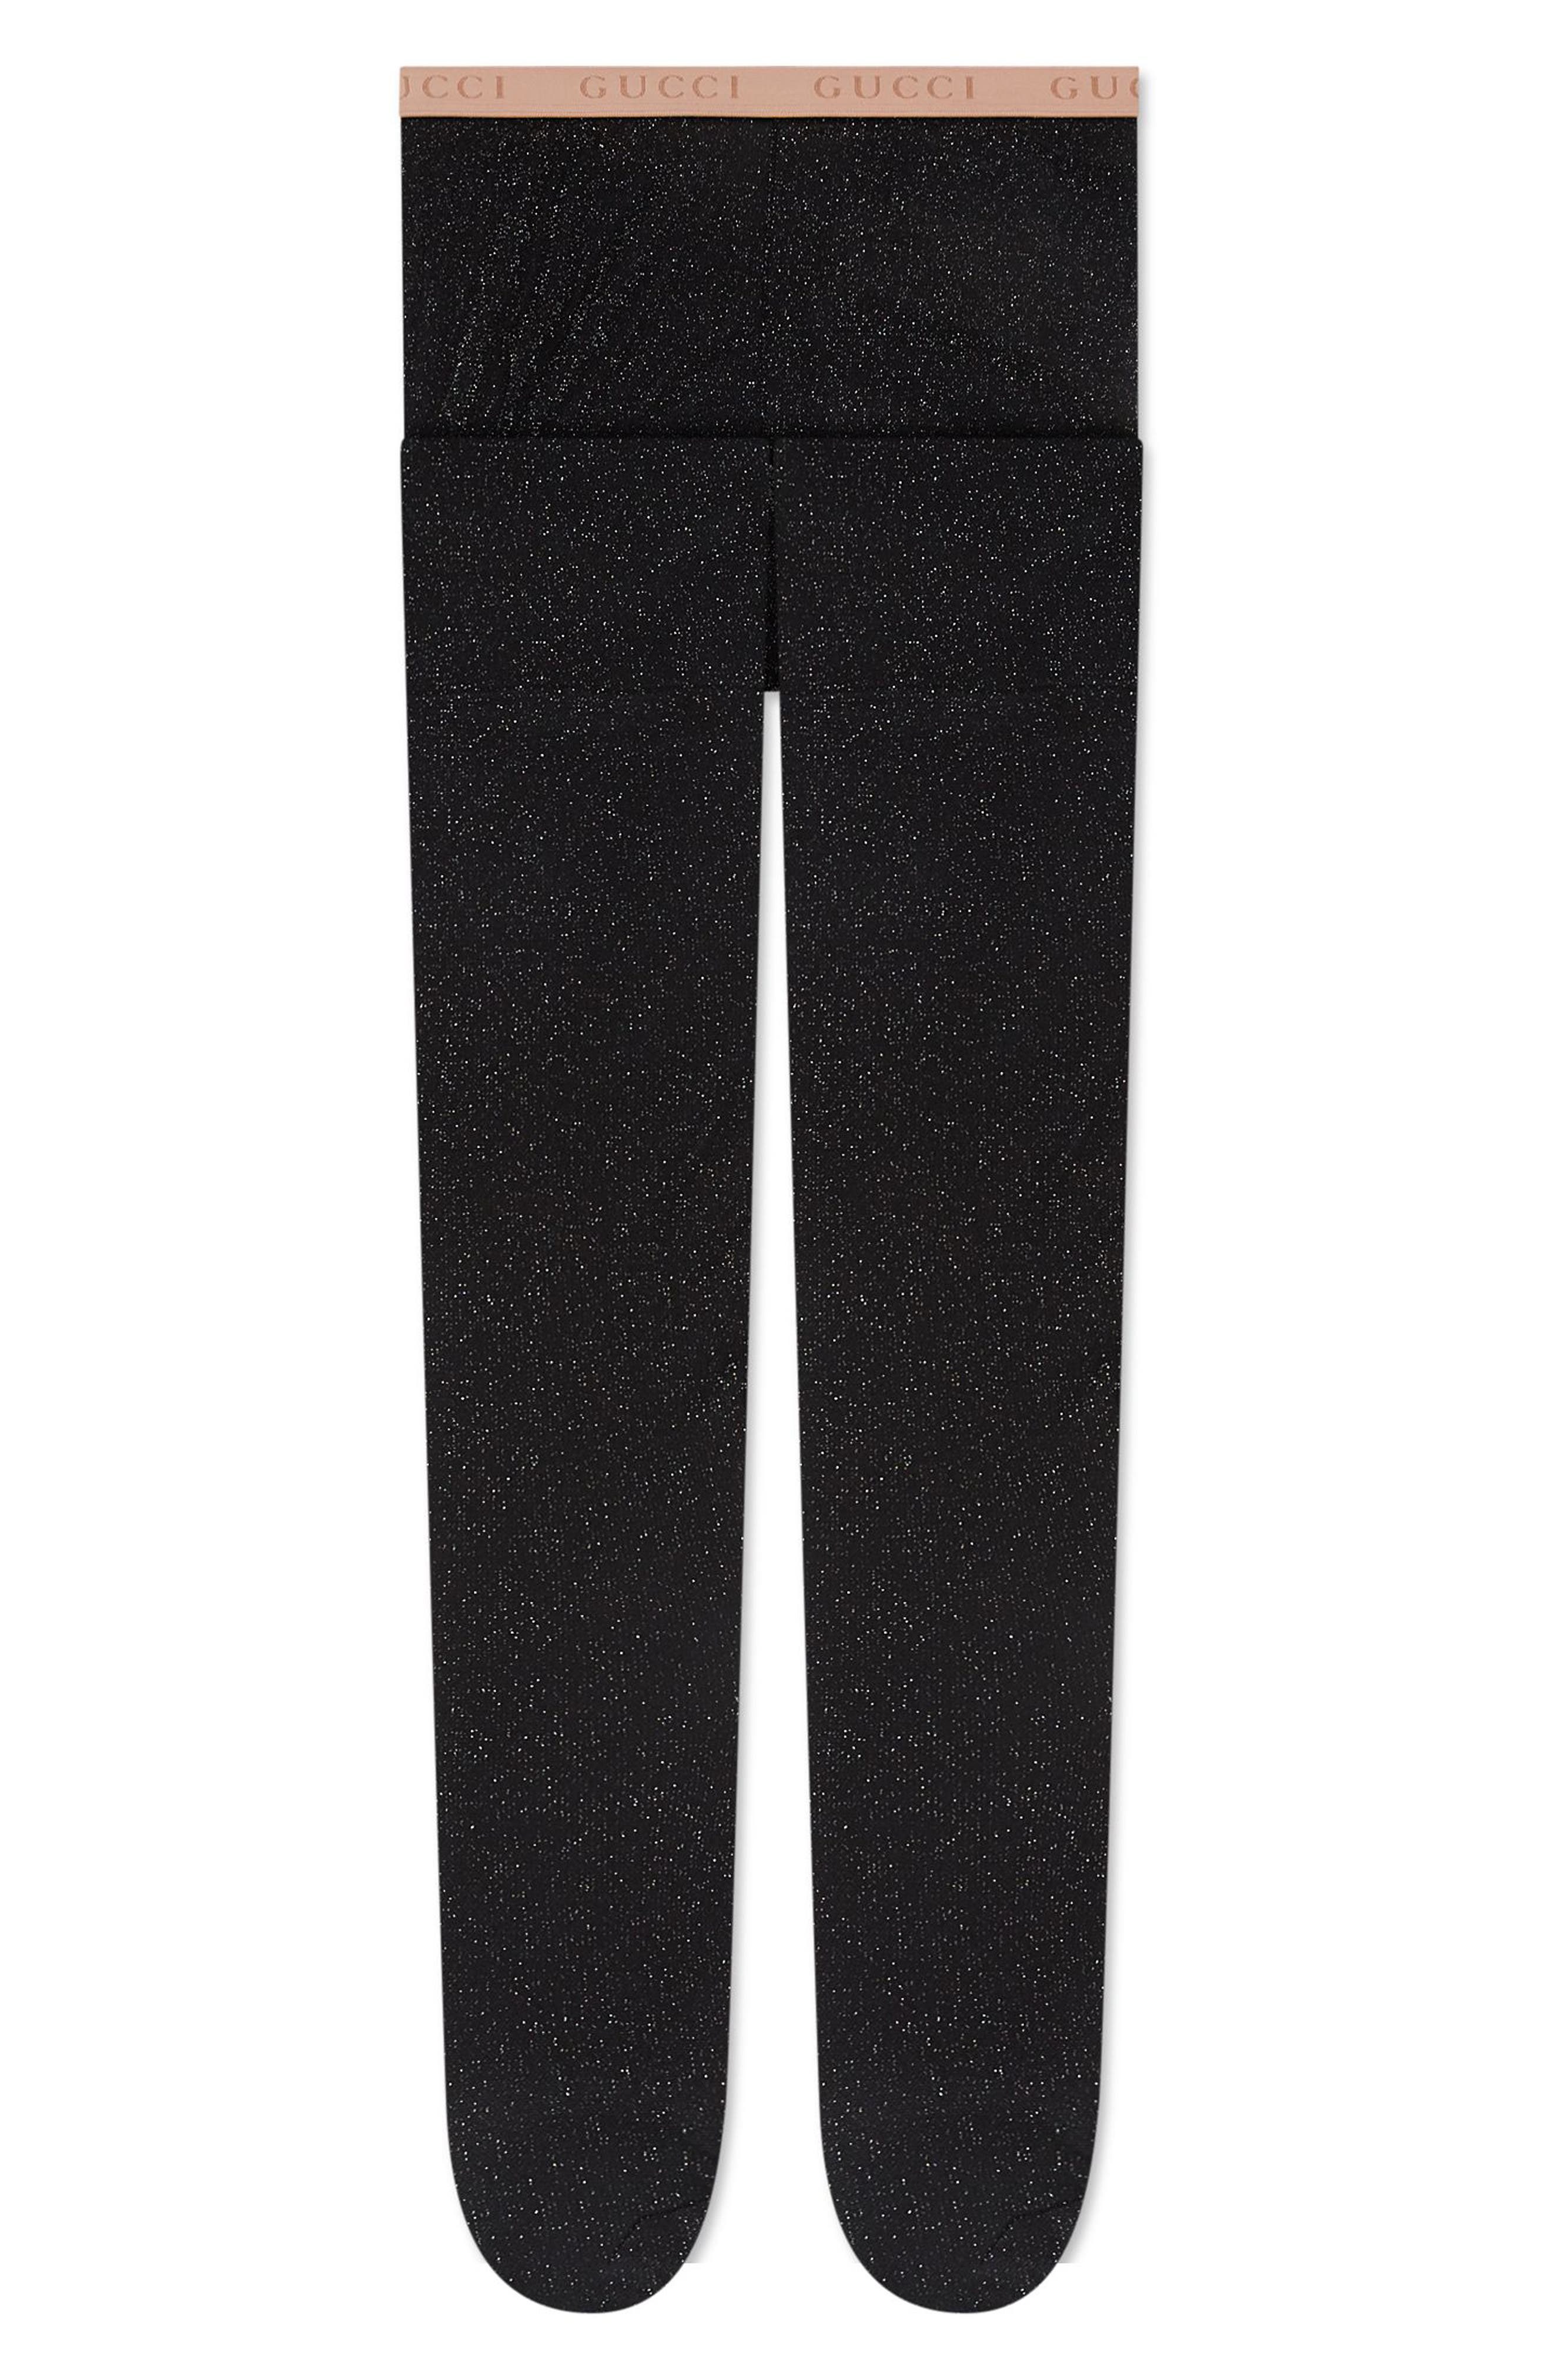 Apc Sweatpants Small An Indispensable Sovereign Remedy For Home Activewear Bottoms Clothing, Shoes & Accessories